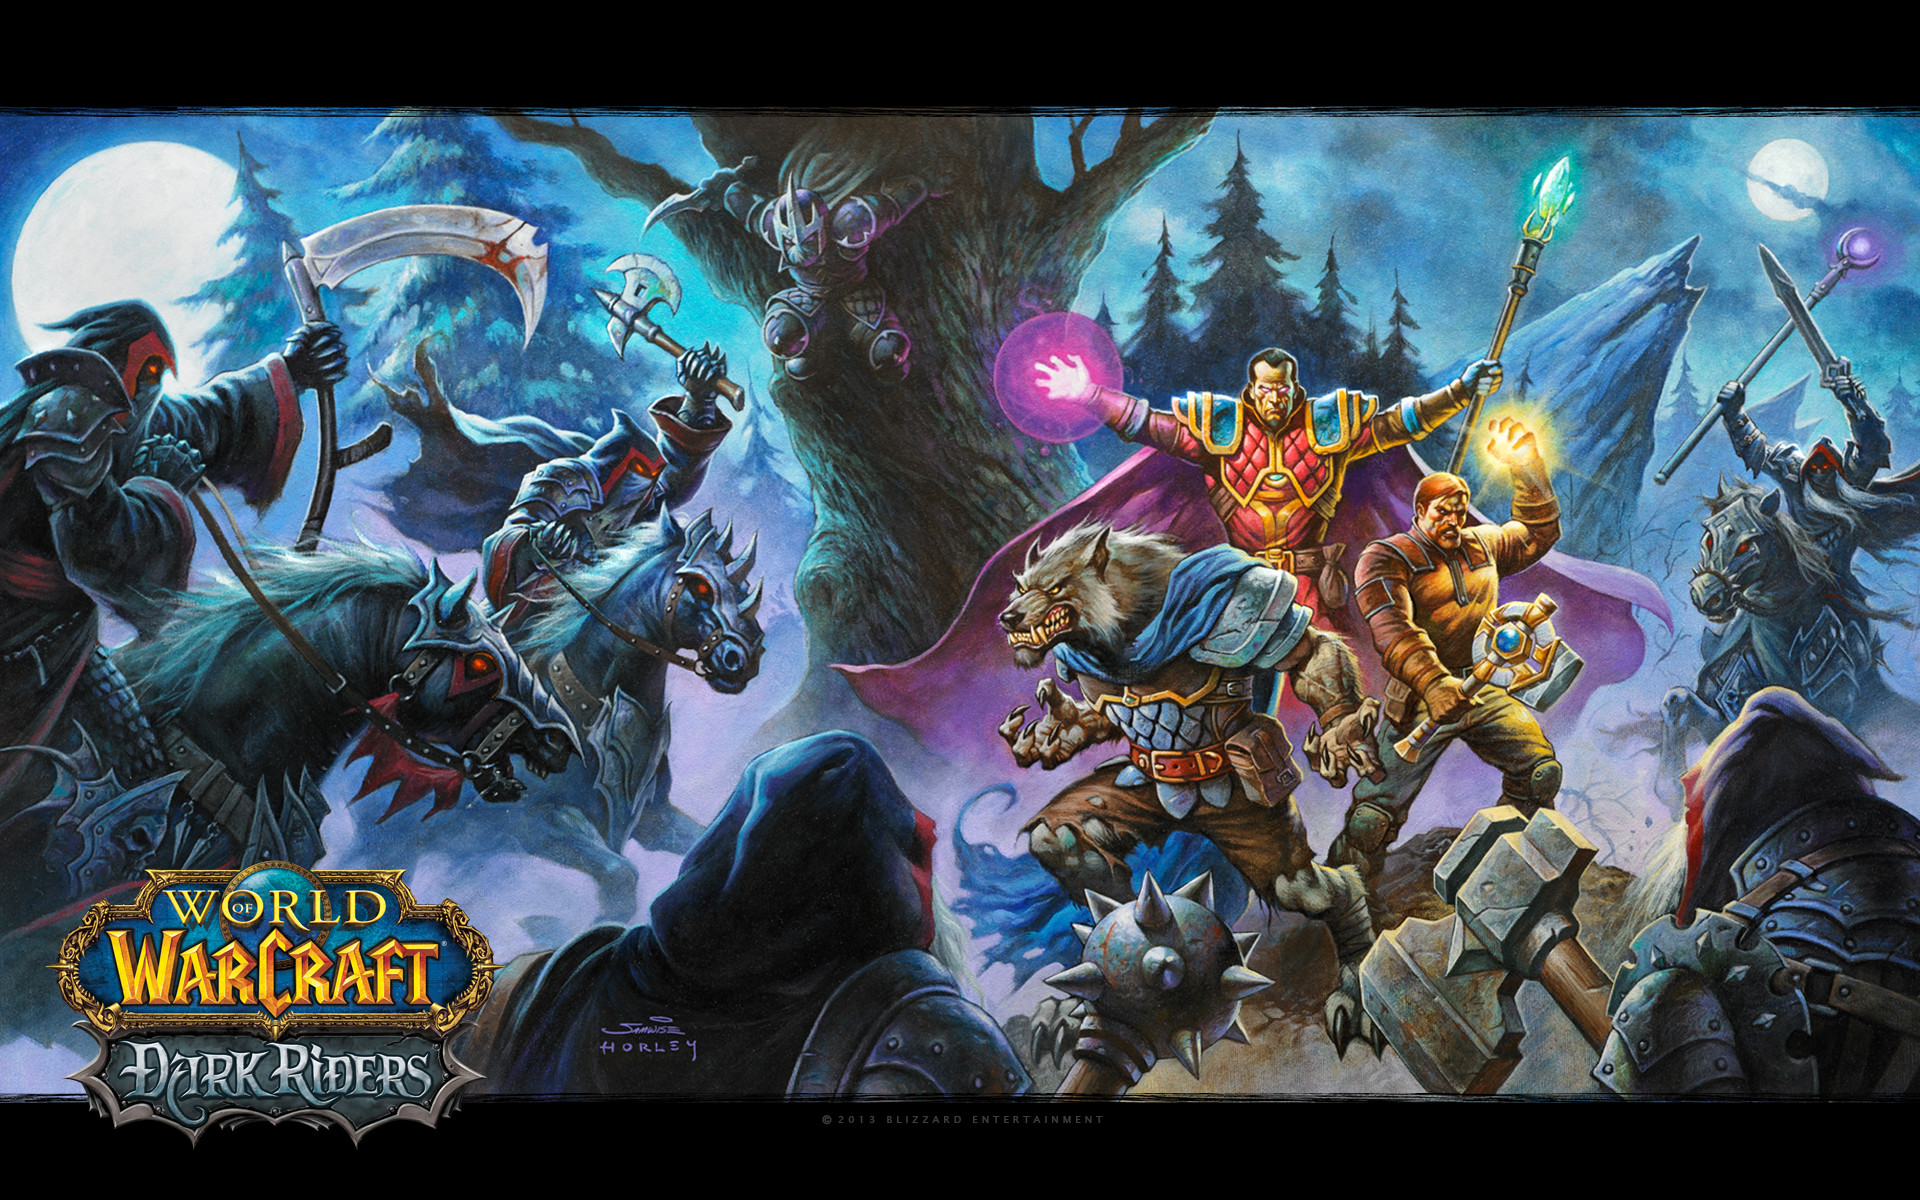 Blizzplanet The Official World of Warcraft: Dark Riders Wallpaper Available  | Blizzplanet